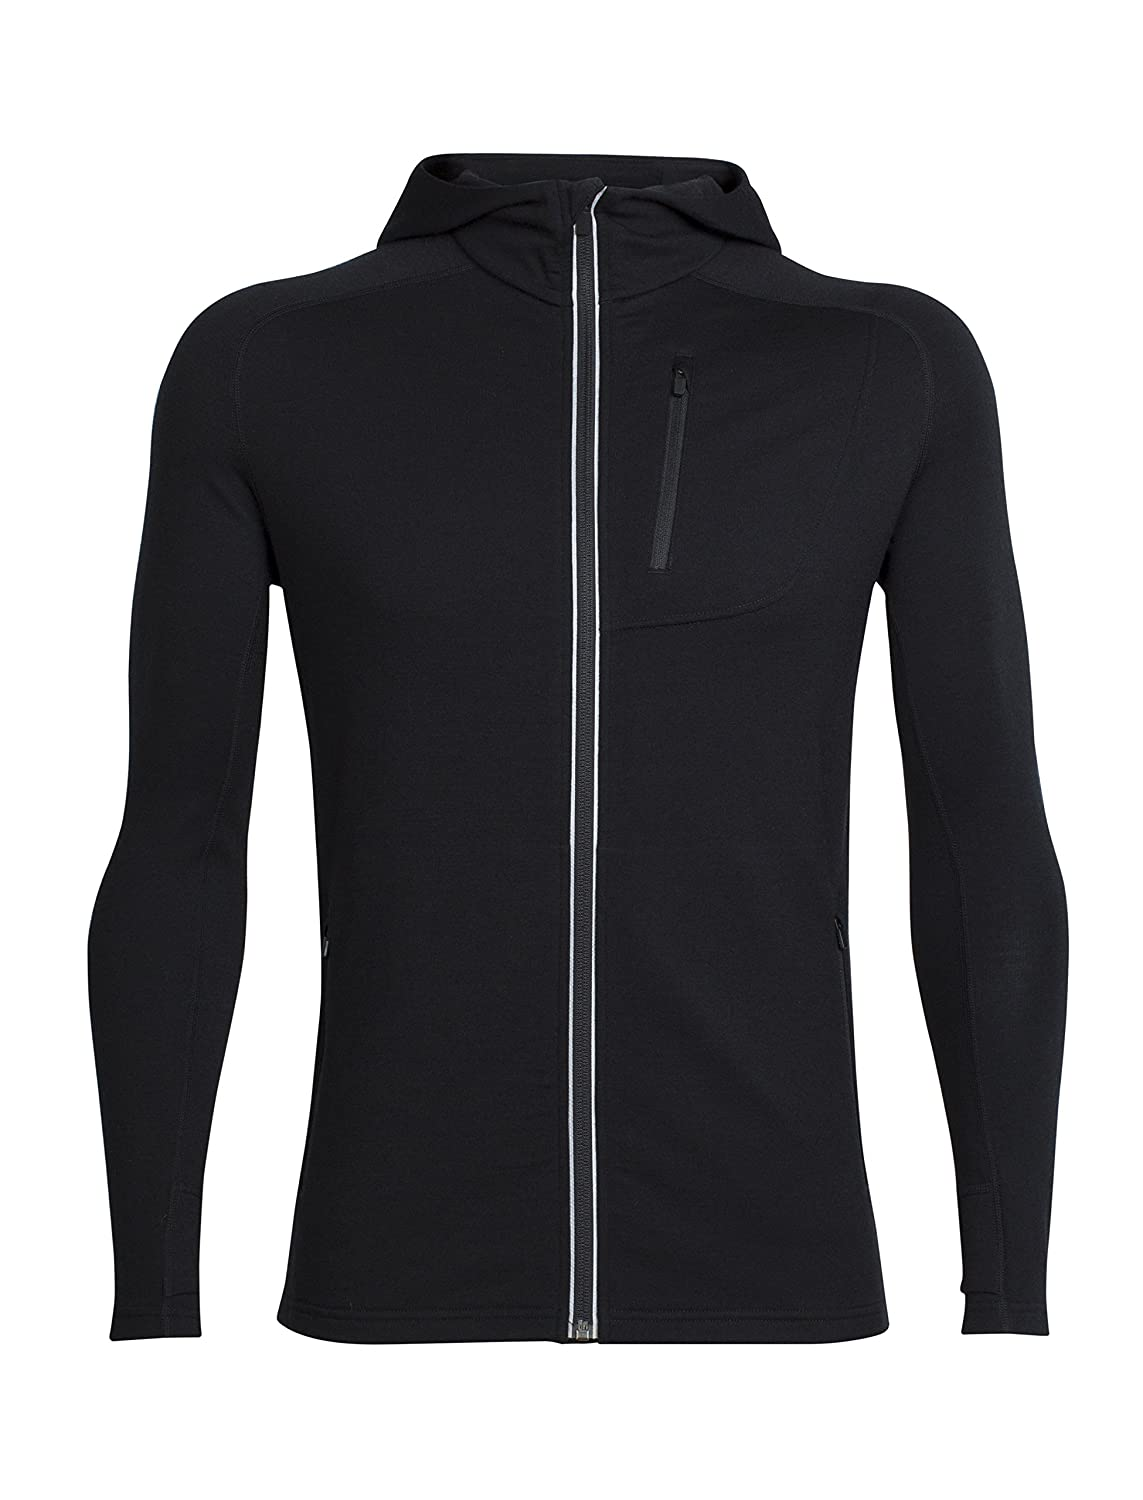 Image of Active Hoodies Icebreaker Merino Quantum Long Sleeve Zip Hoodie